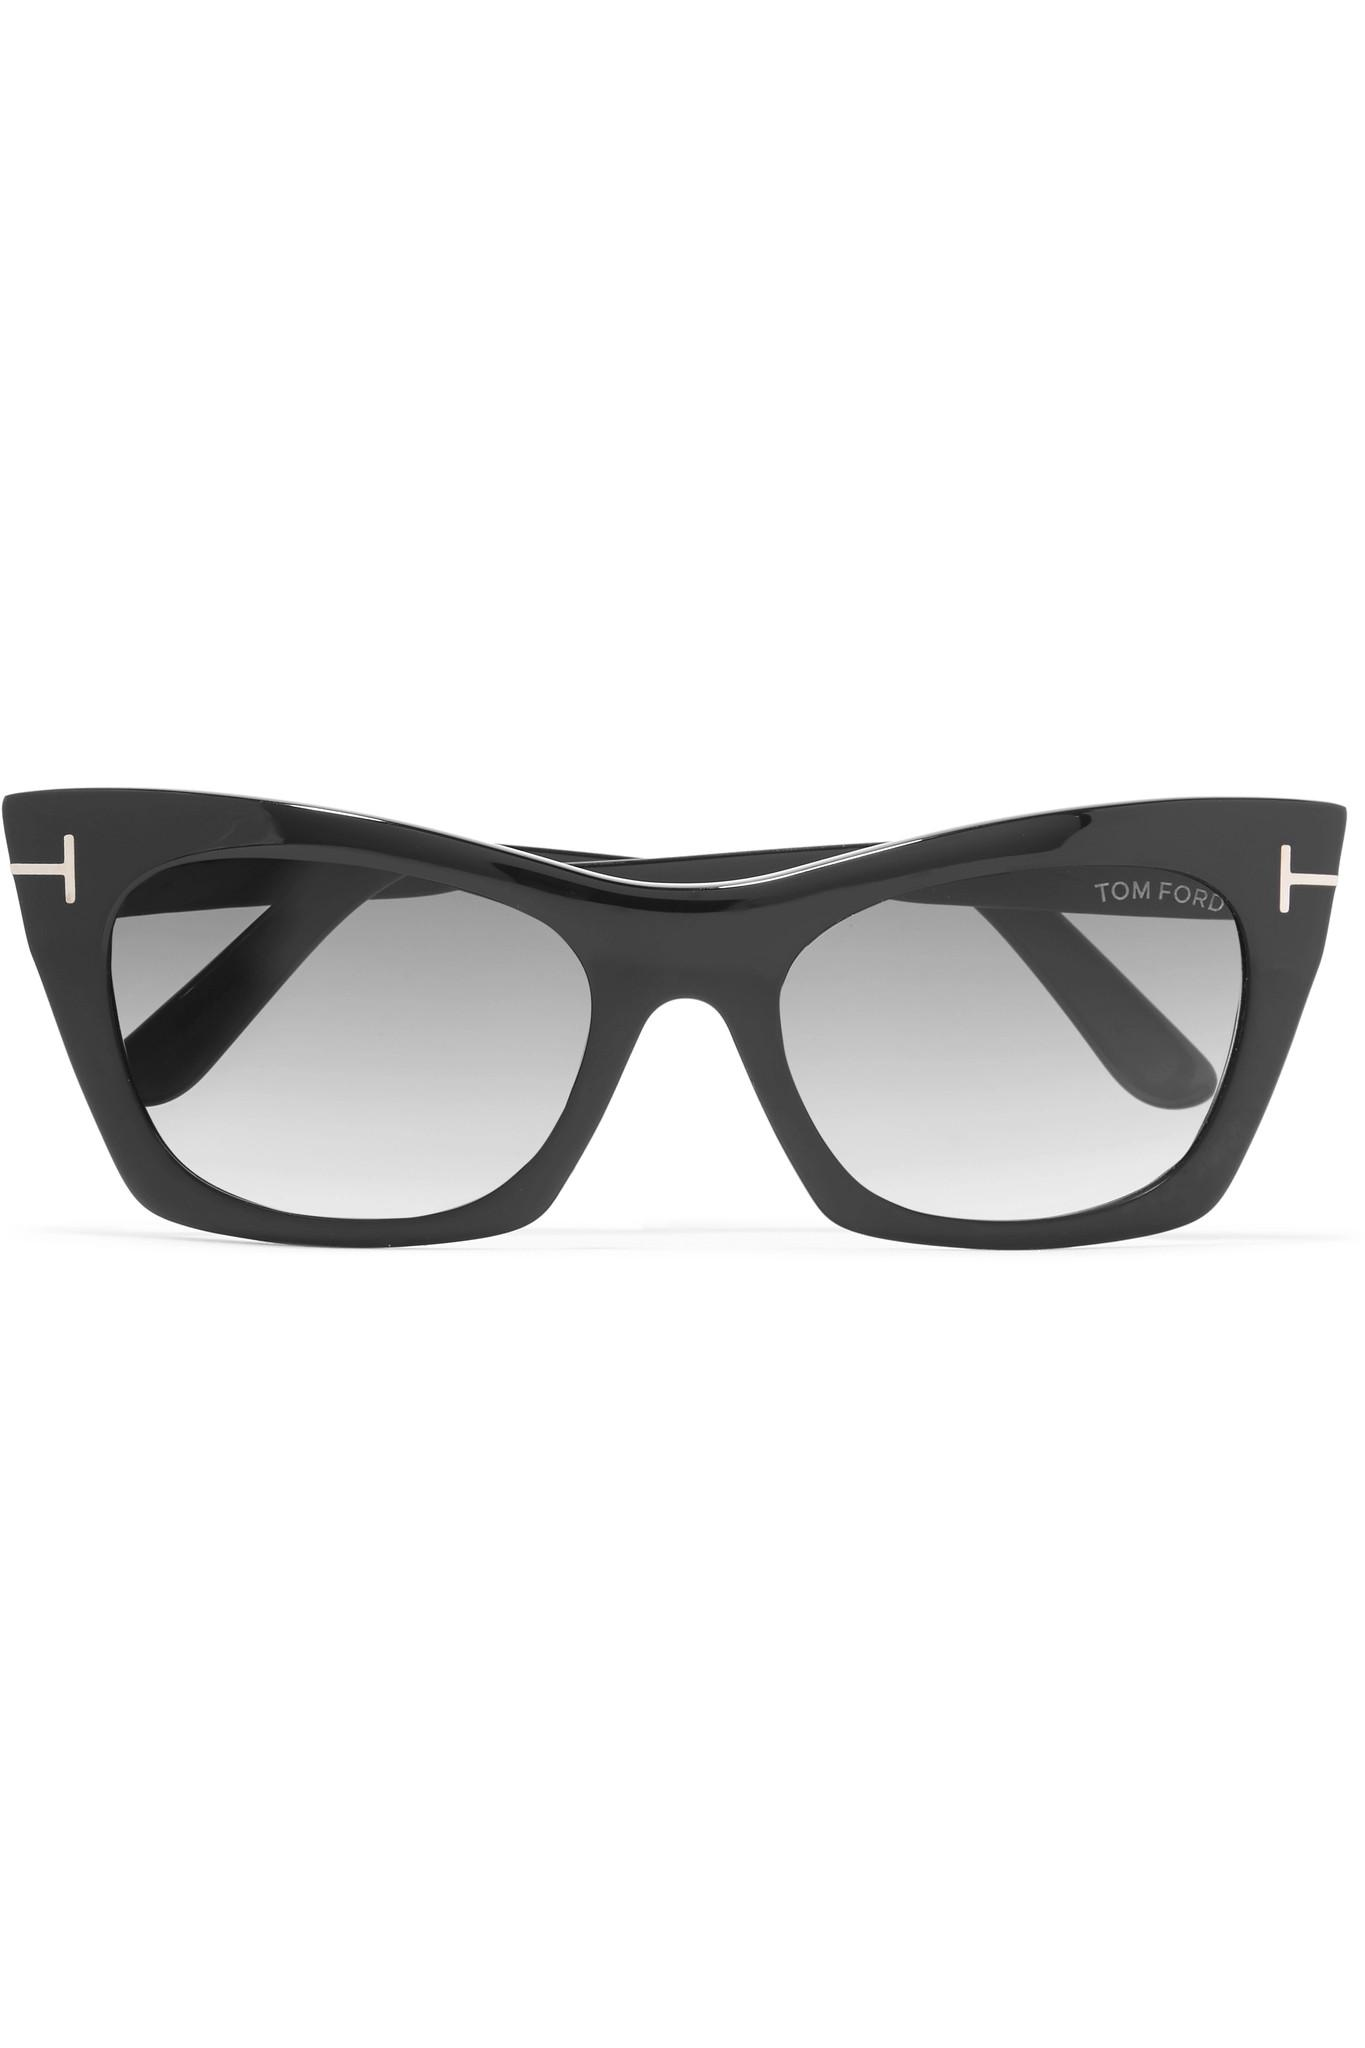 af0ce3bb8d2b Gallery. Previously sold at  NET-A-PORTER · Women s Acetate Sunglasses  Women s Cat Eye Sunglasses Women s Tom Ford ...